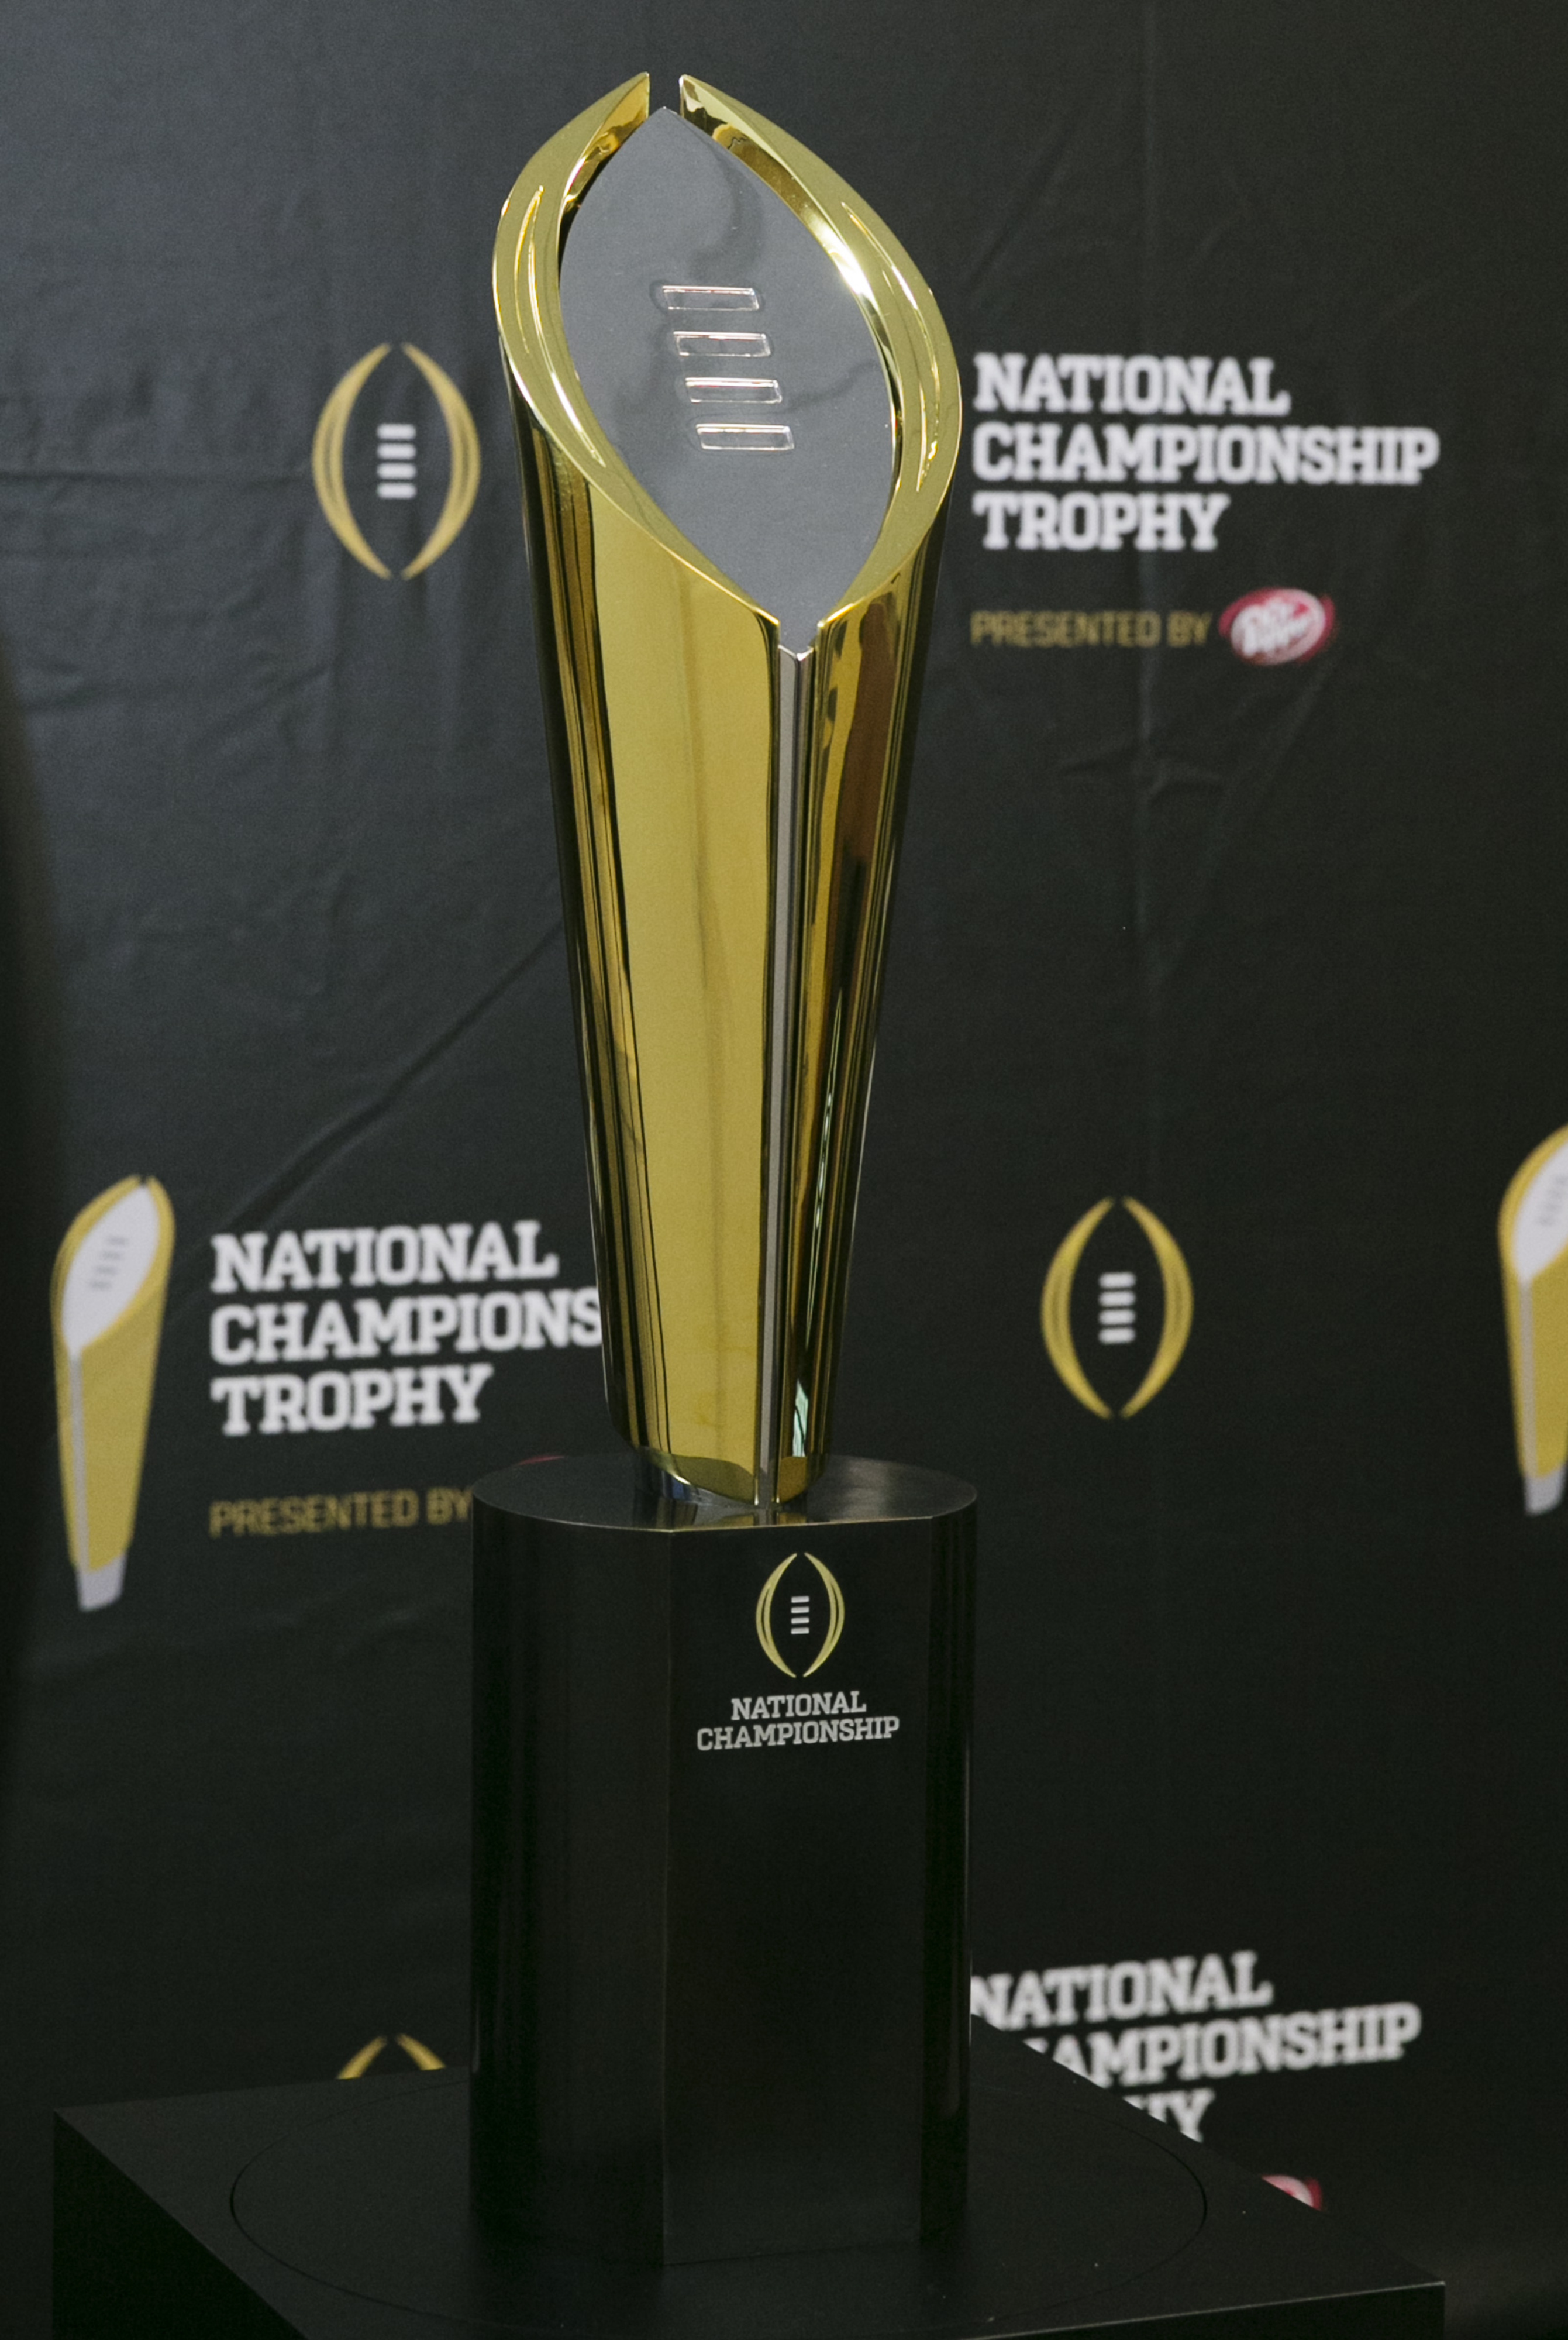 Expect Coach Mora to Be Bringing Home the First National Championship Trophy of the CFP Era.